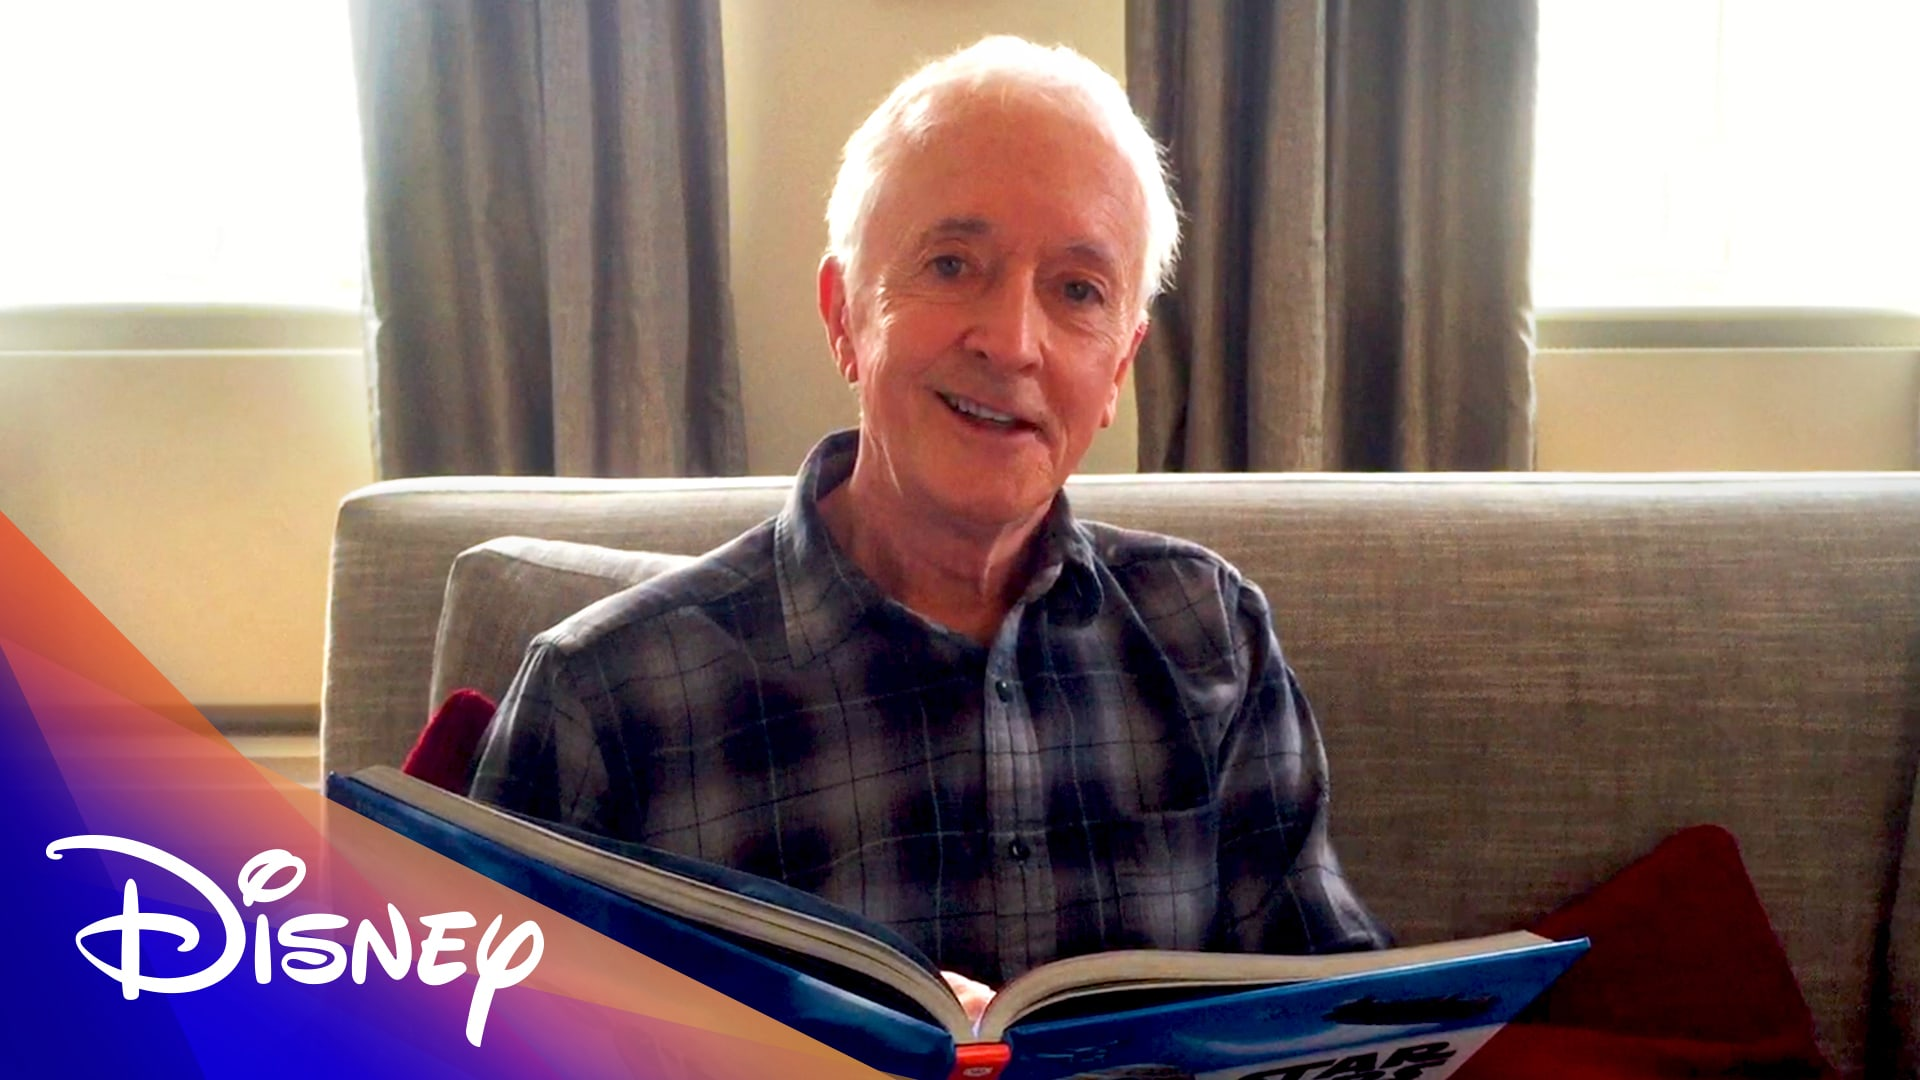 Watch Three Disney Storytime Videos With the Stars of Star Wars